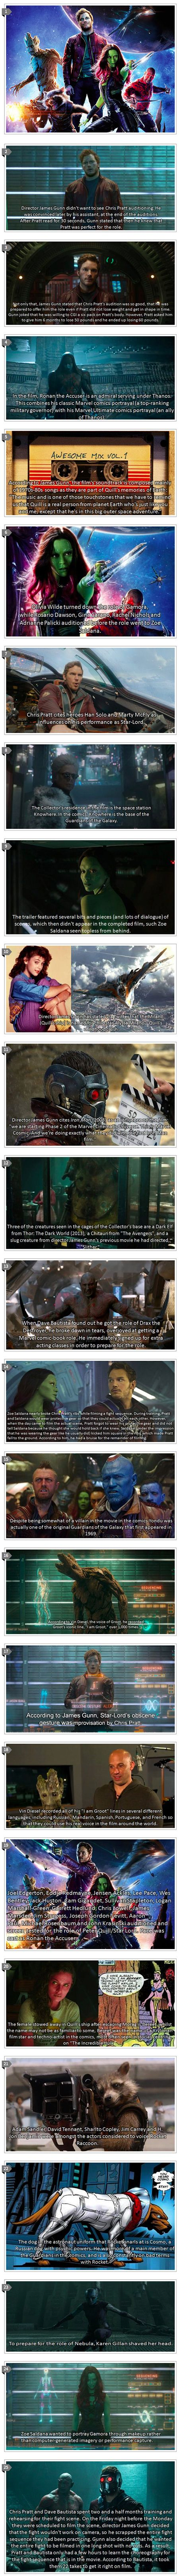 Guardians of the Galaxy Facts http://geekxgirls.com/article.php?ID=3537